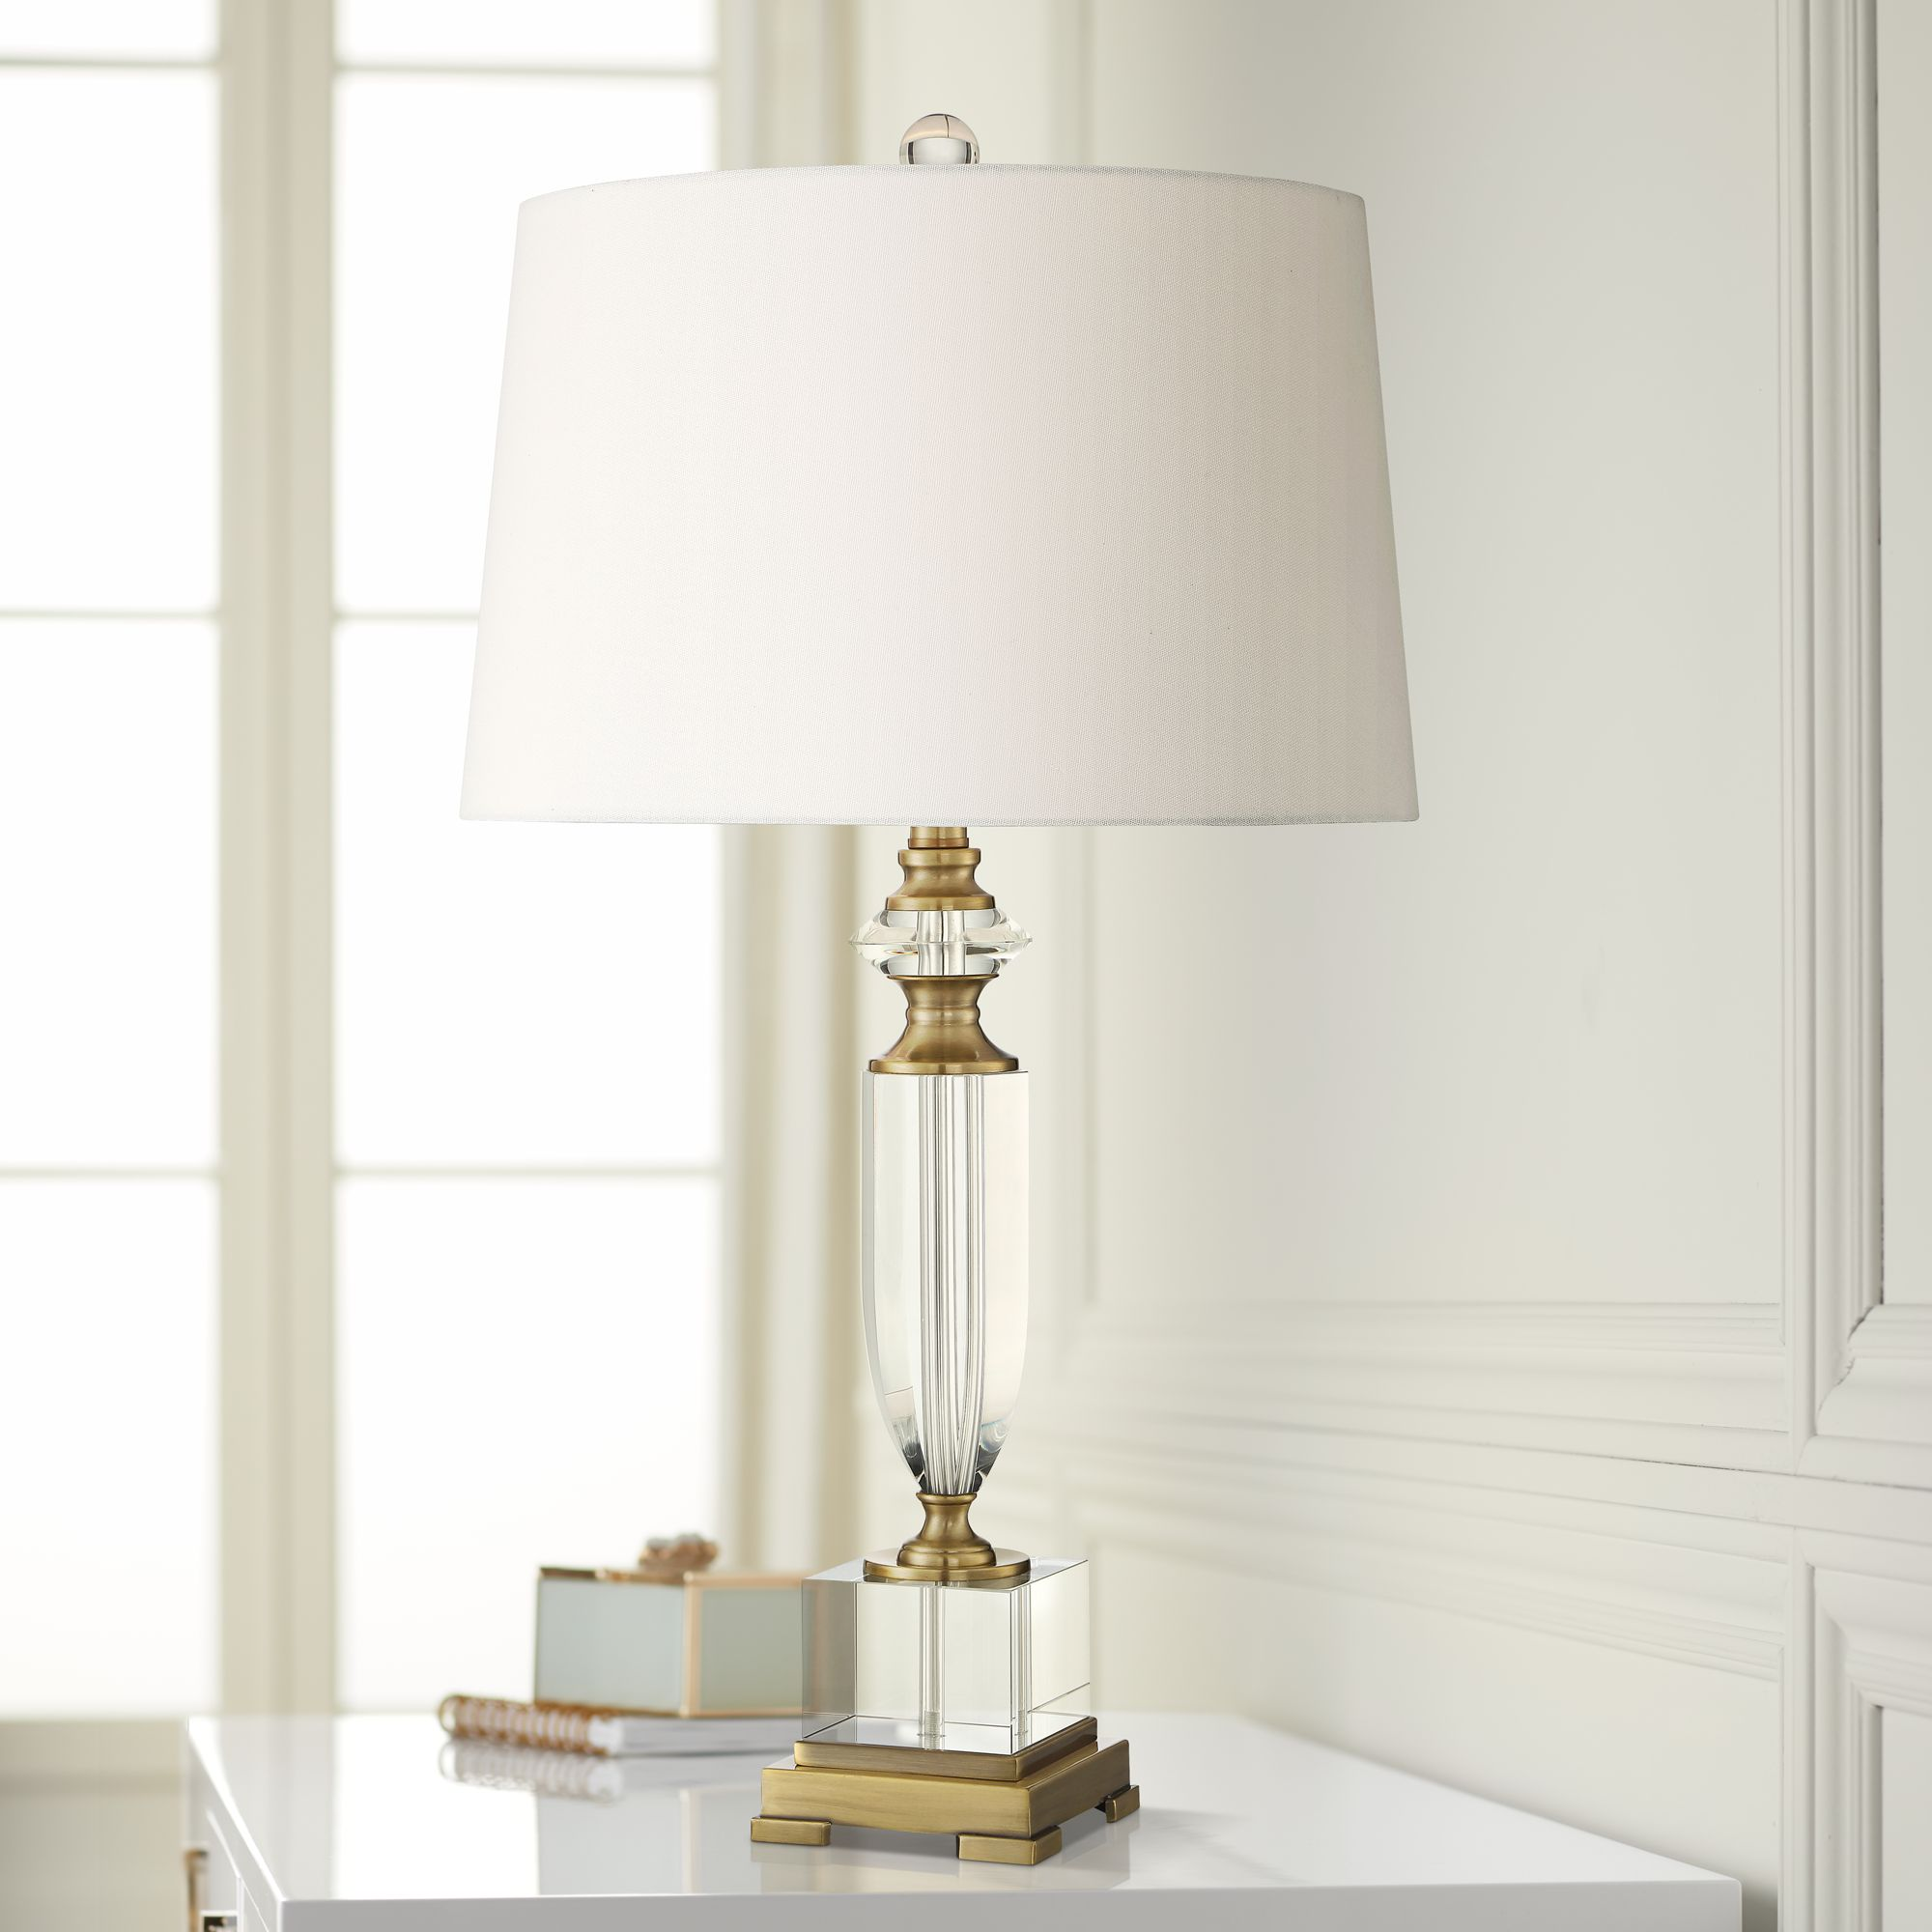 Details About Traditional Table Lamp Urn Clear Crystal Gold For Living Room Bedroom Bedside